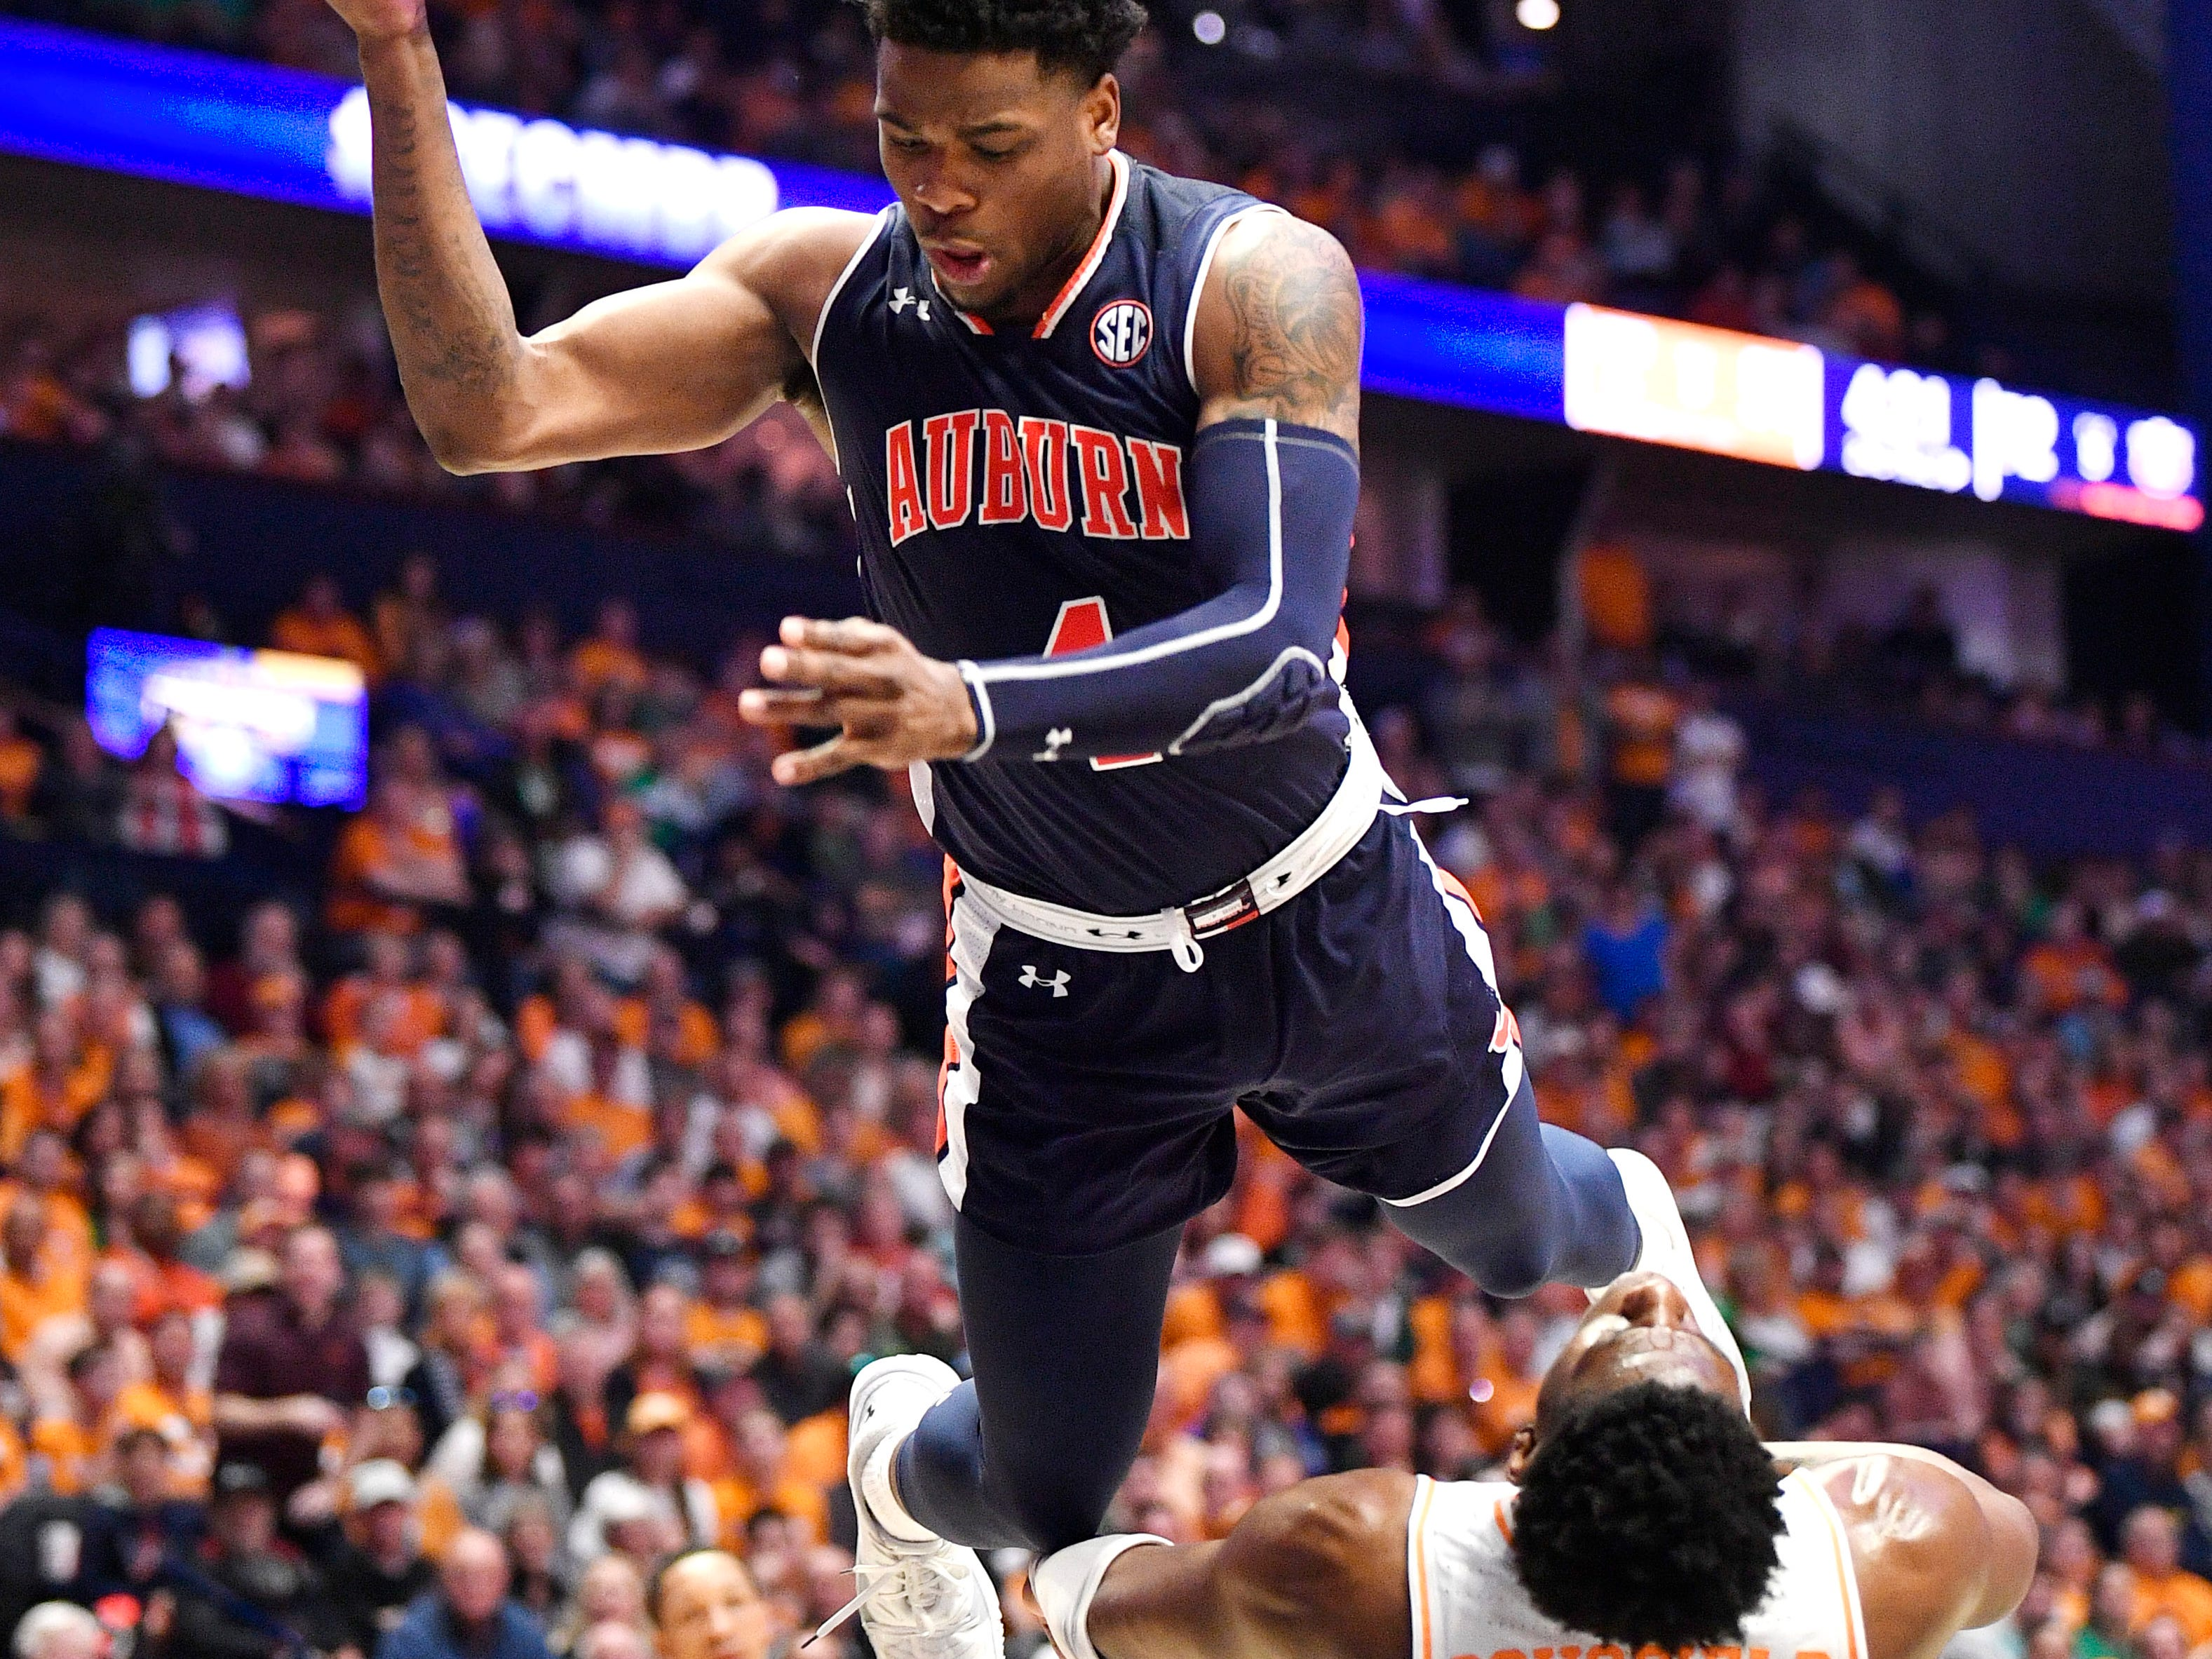 Auburn guard/forward Malik Dunbar (4) shoots over Tennessee guard Admiral Schofield (5) during the second half of the SEC Men's Basketball Tournament championship game at Bridgestone Arena in Nashville, Tenn., Sunday, March 17, 2019.